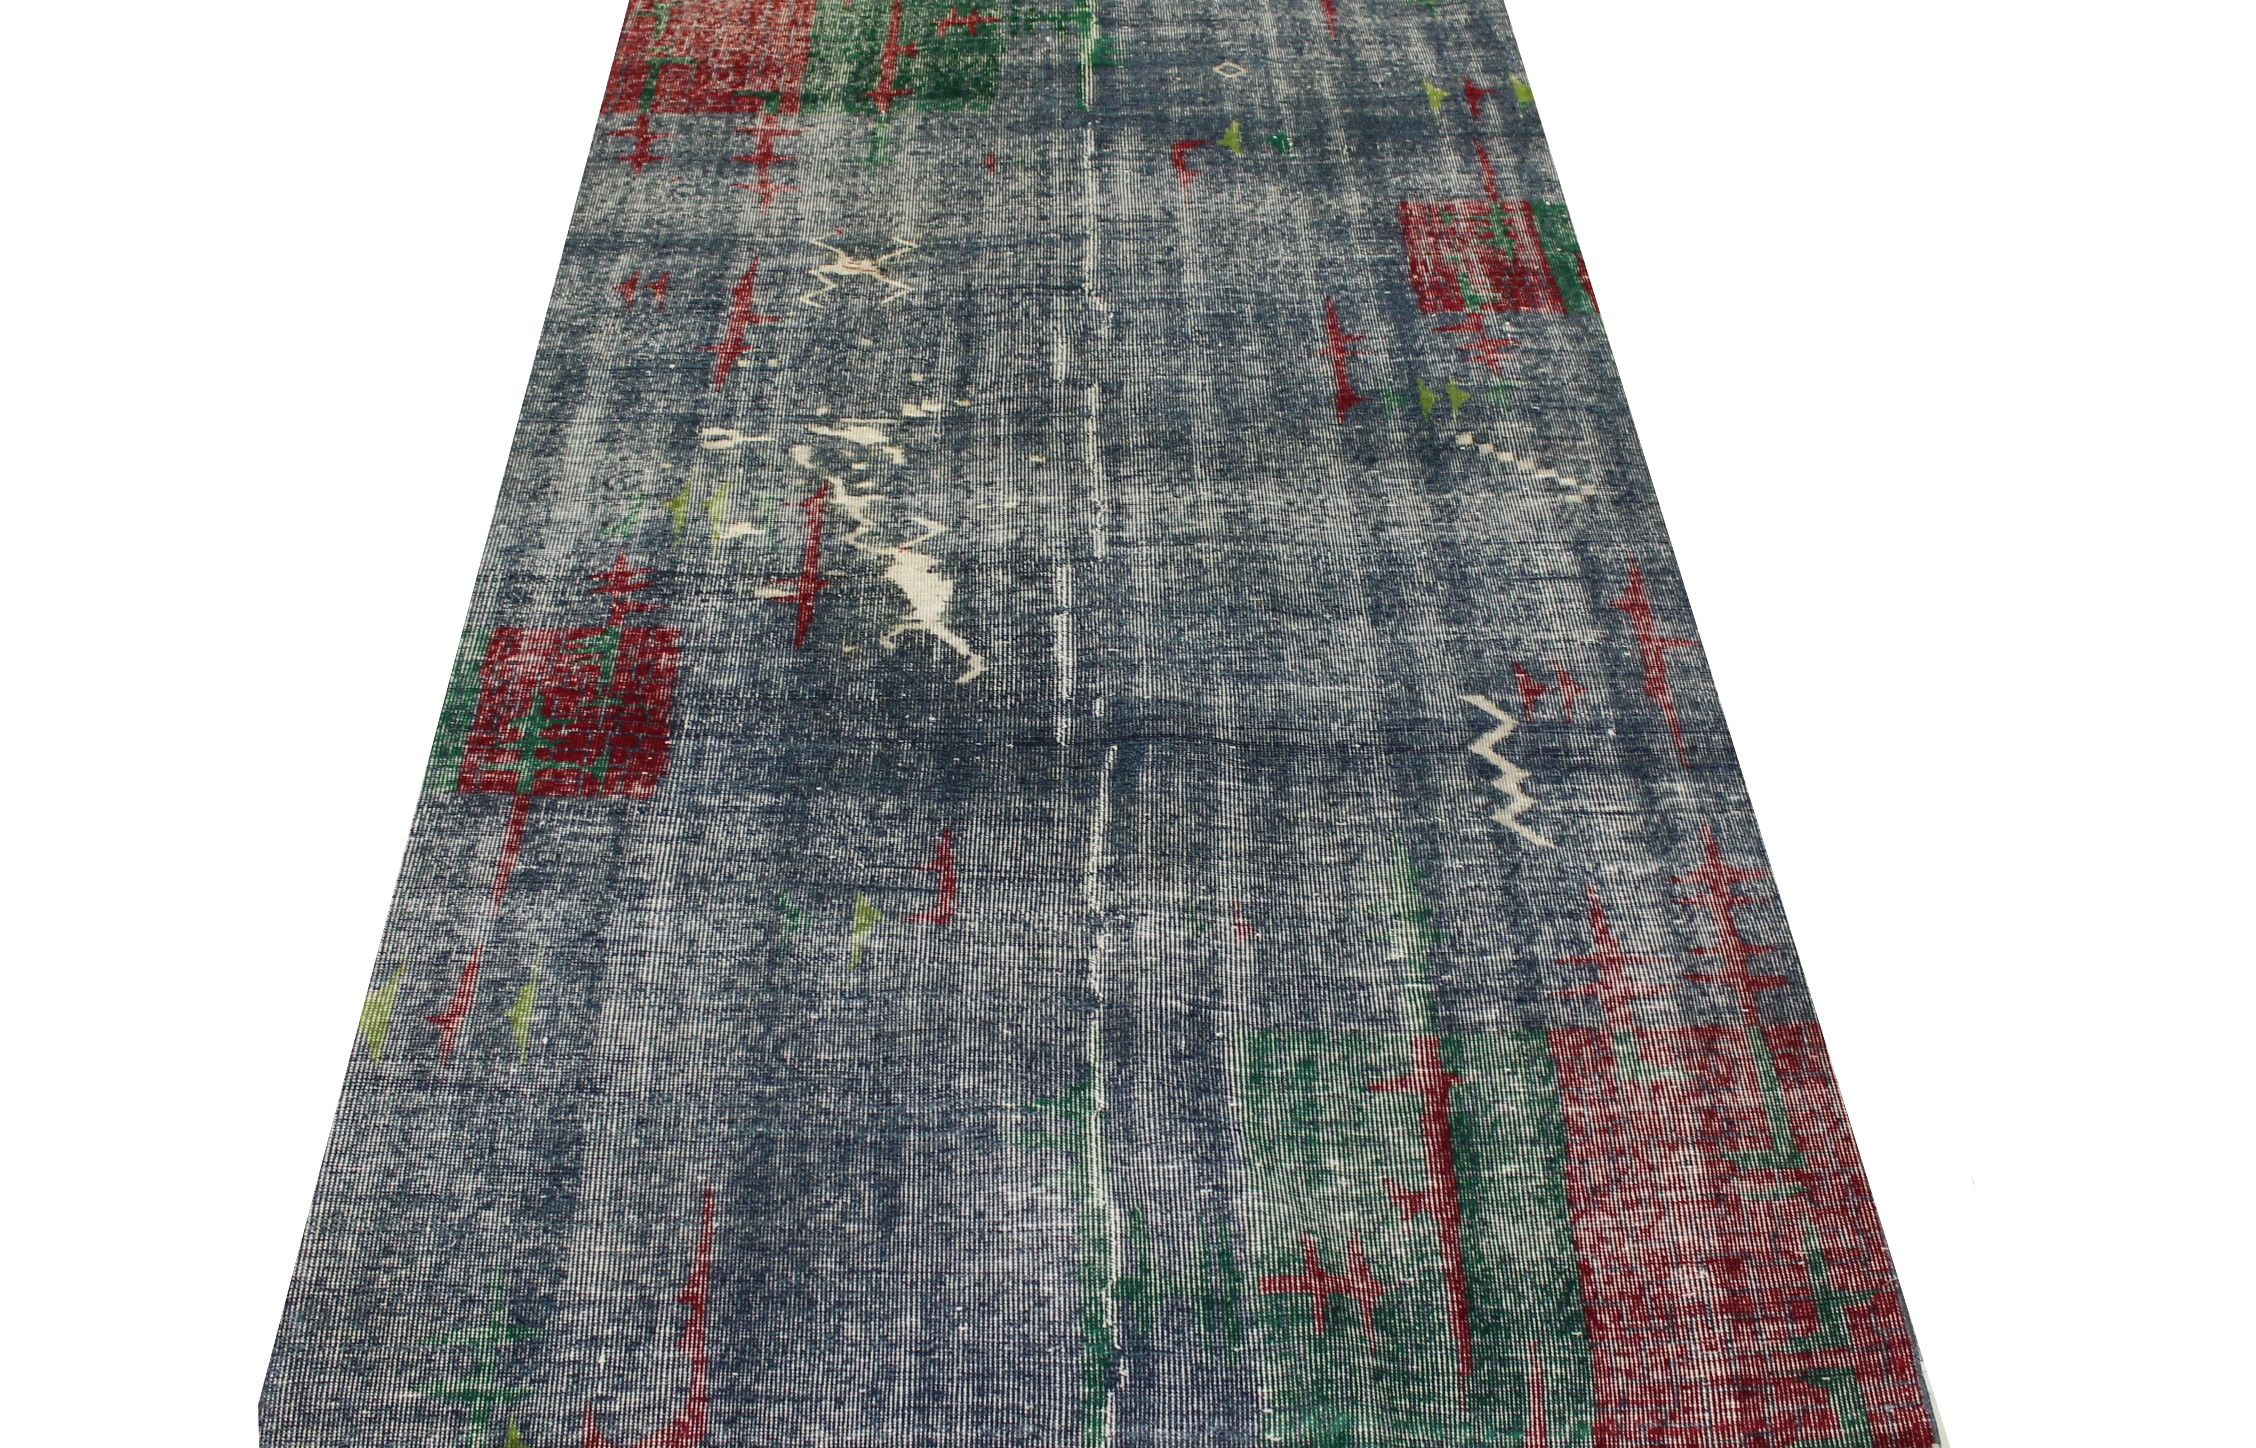 5x7/8 Contemporary Hand Knotted Wool Area Rug - MR023455